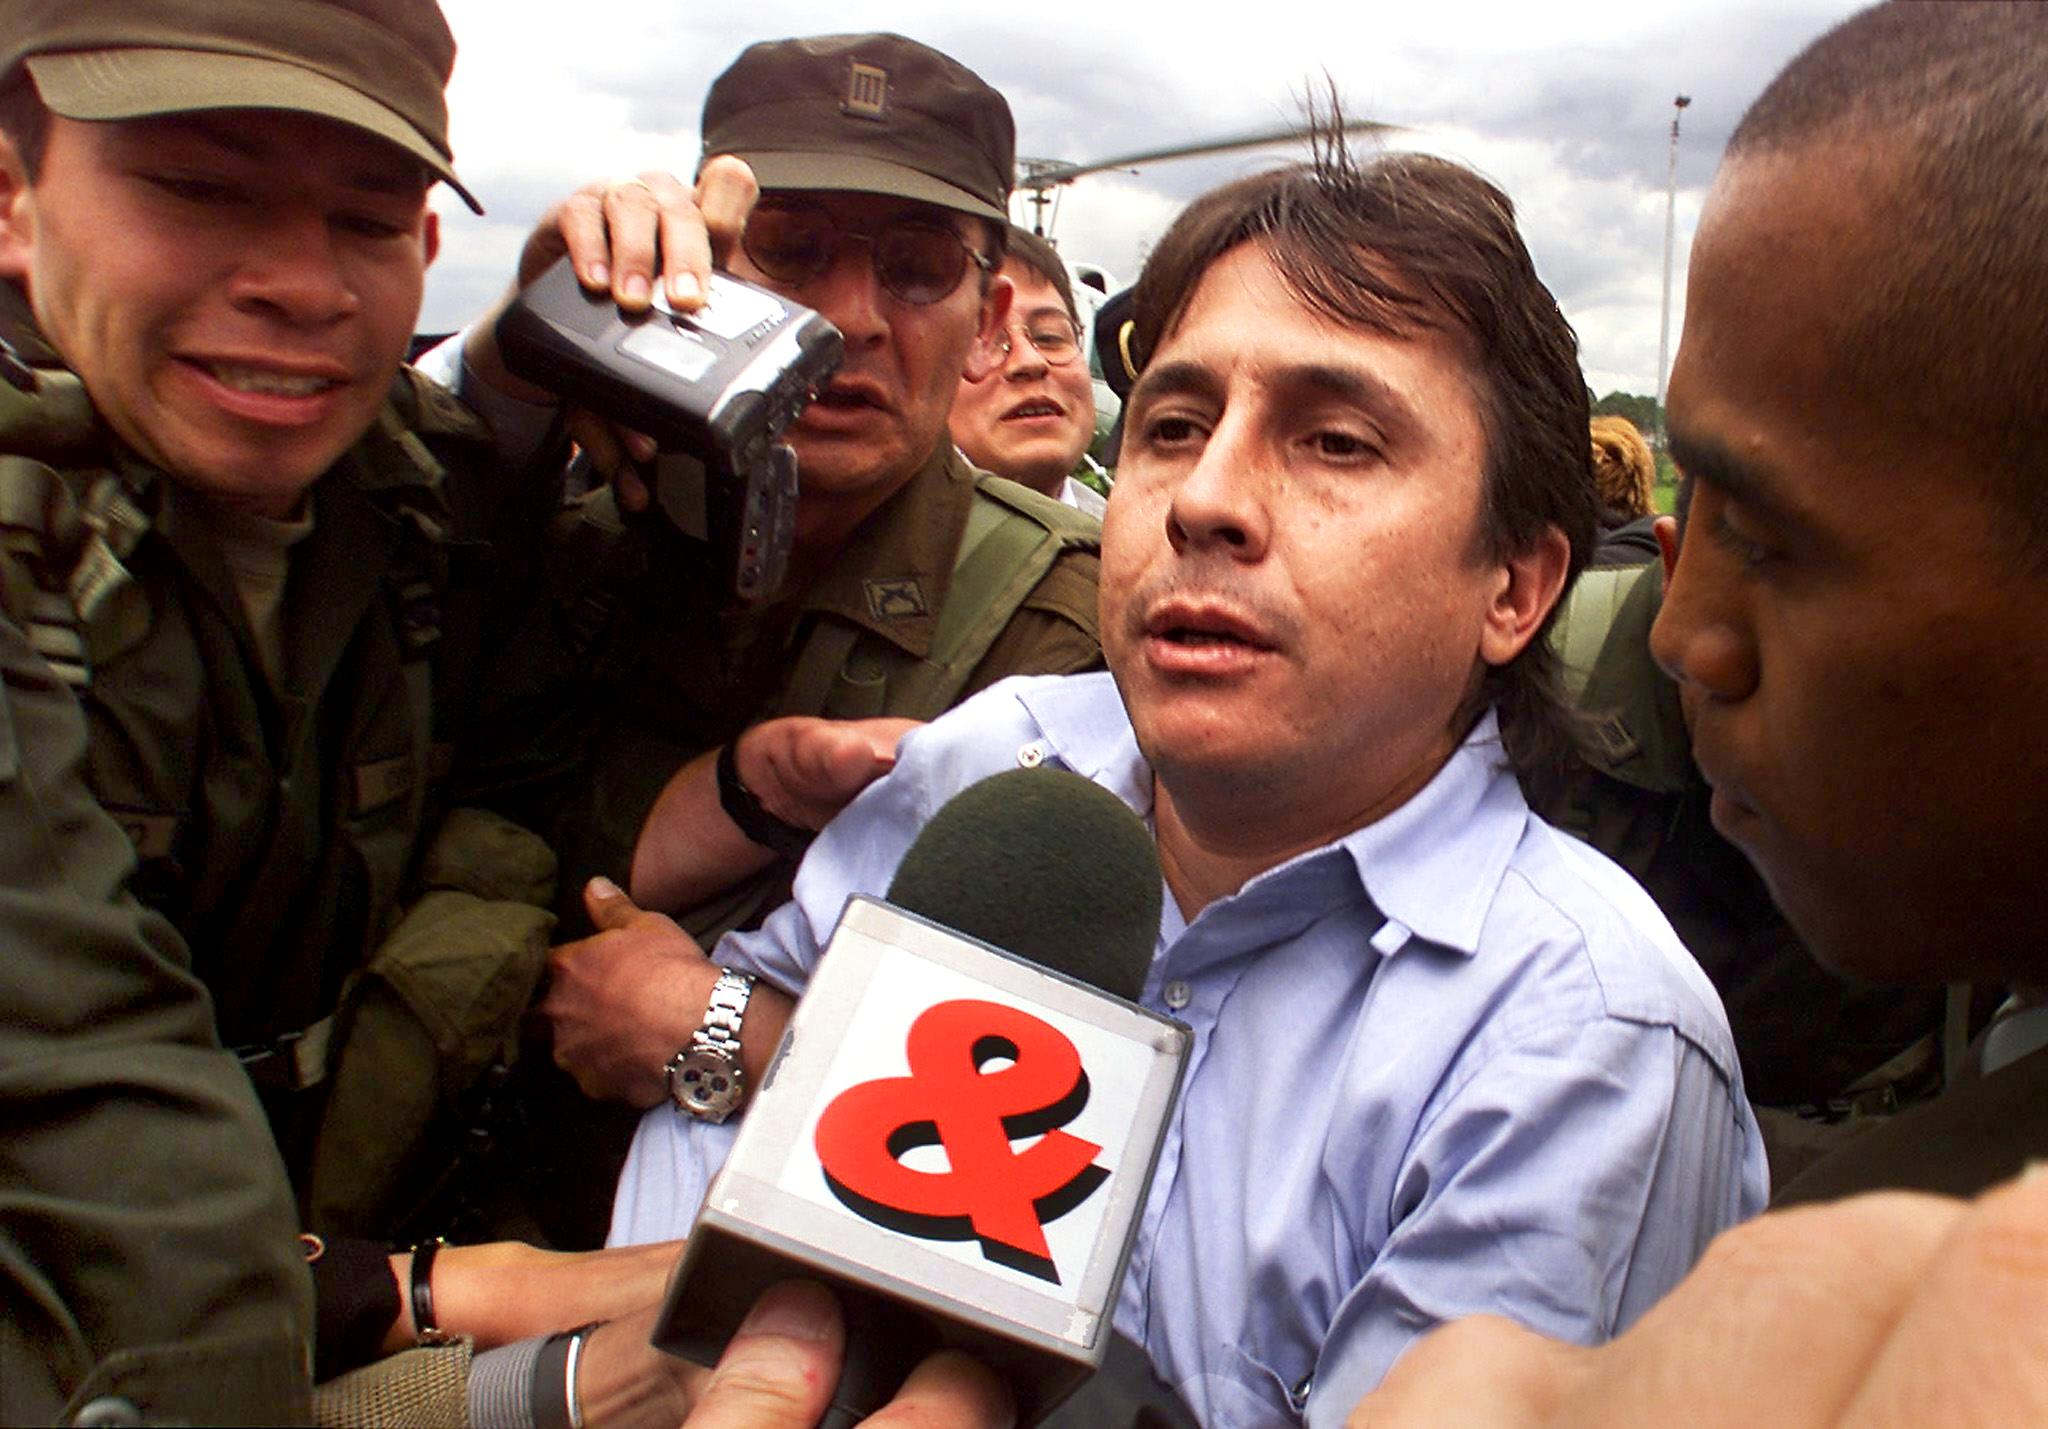 Prominent Colombian drug trafficker Fabio Ochoa Vasquez